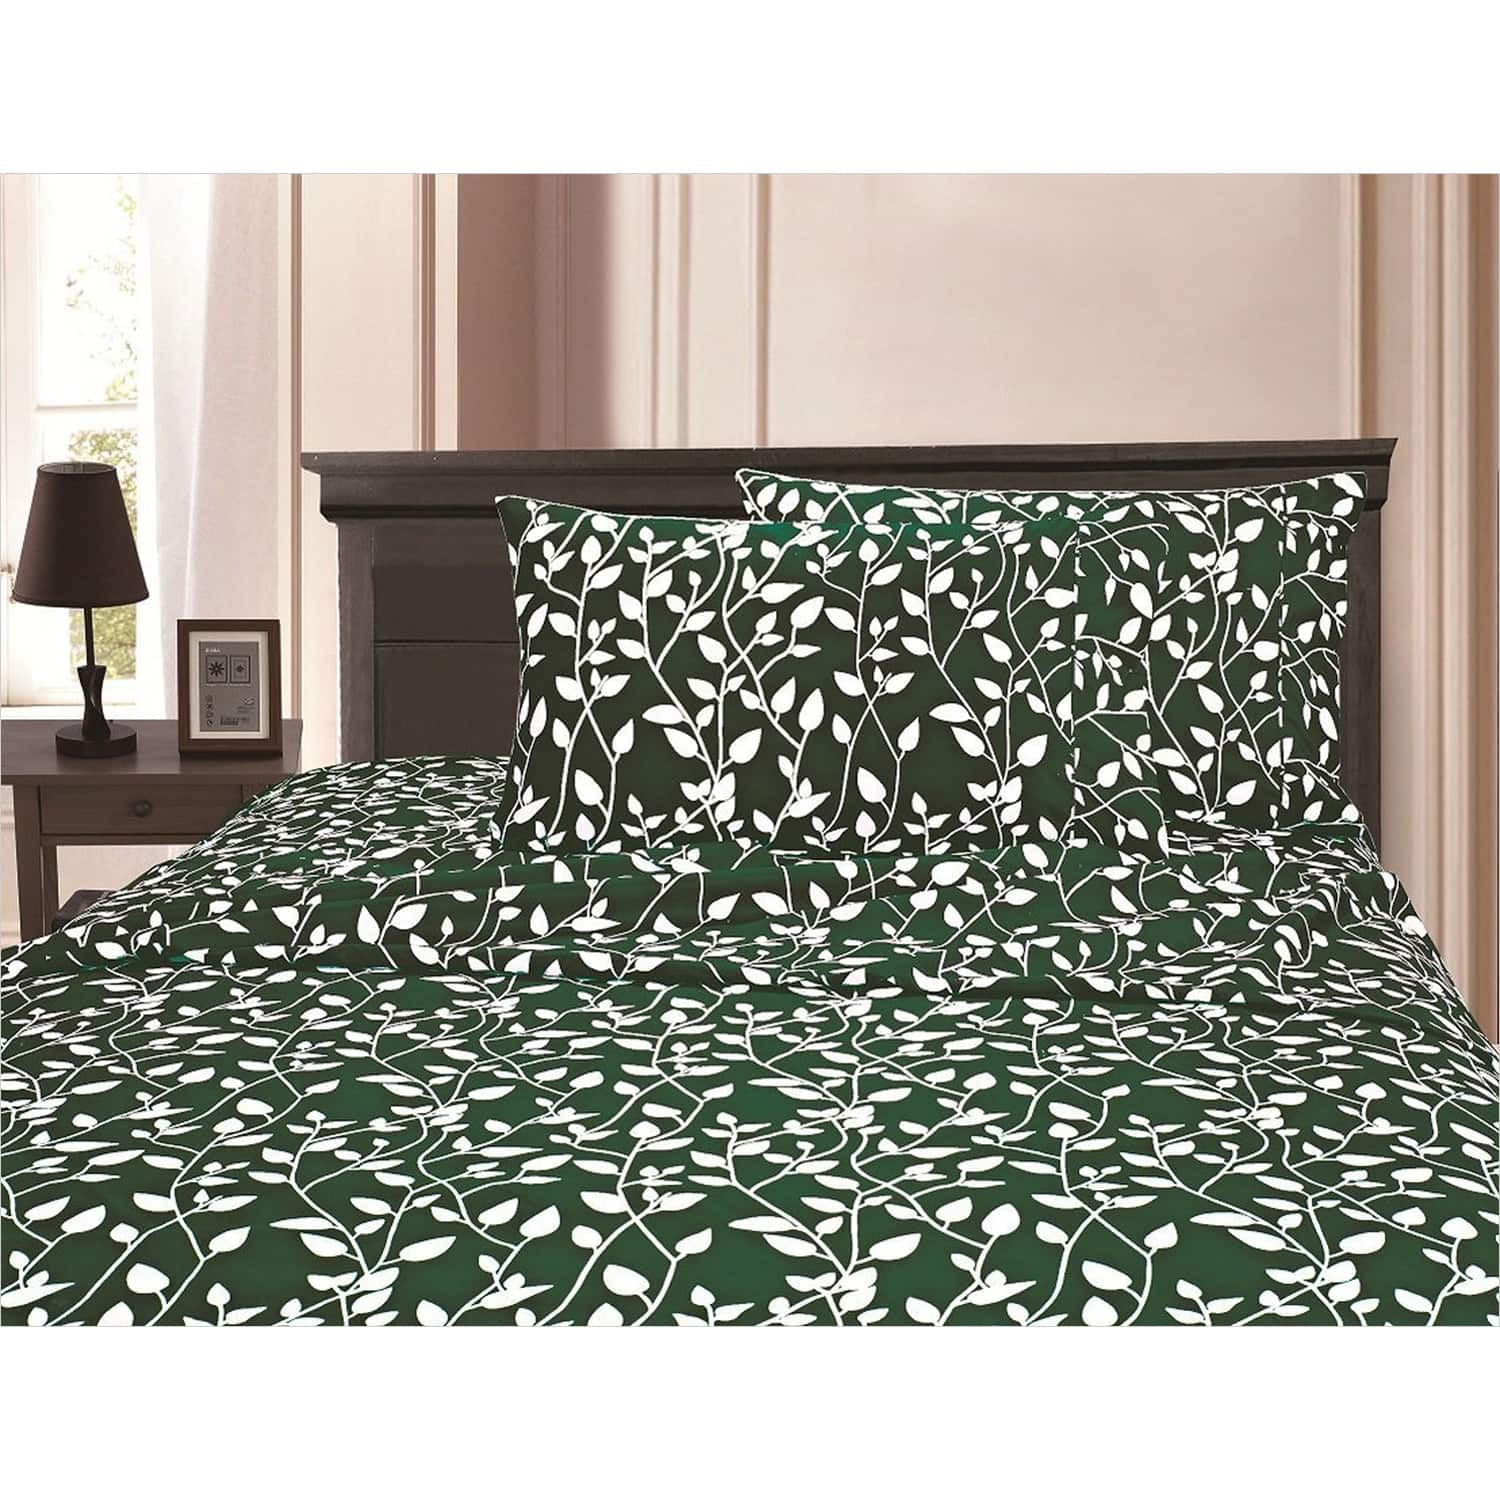 4 pcs set 1500 Series Wrinkle And Fade Bedding Sheets - $14.44 + Free Shipping